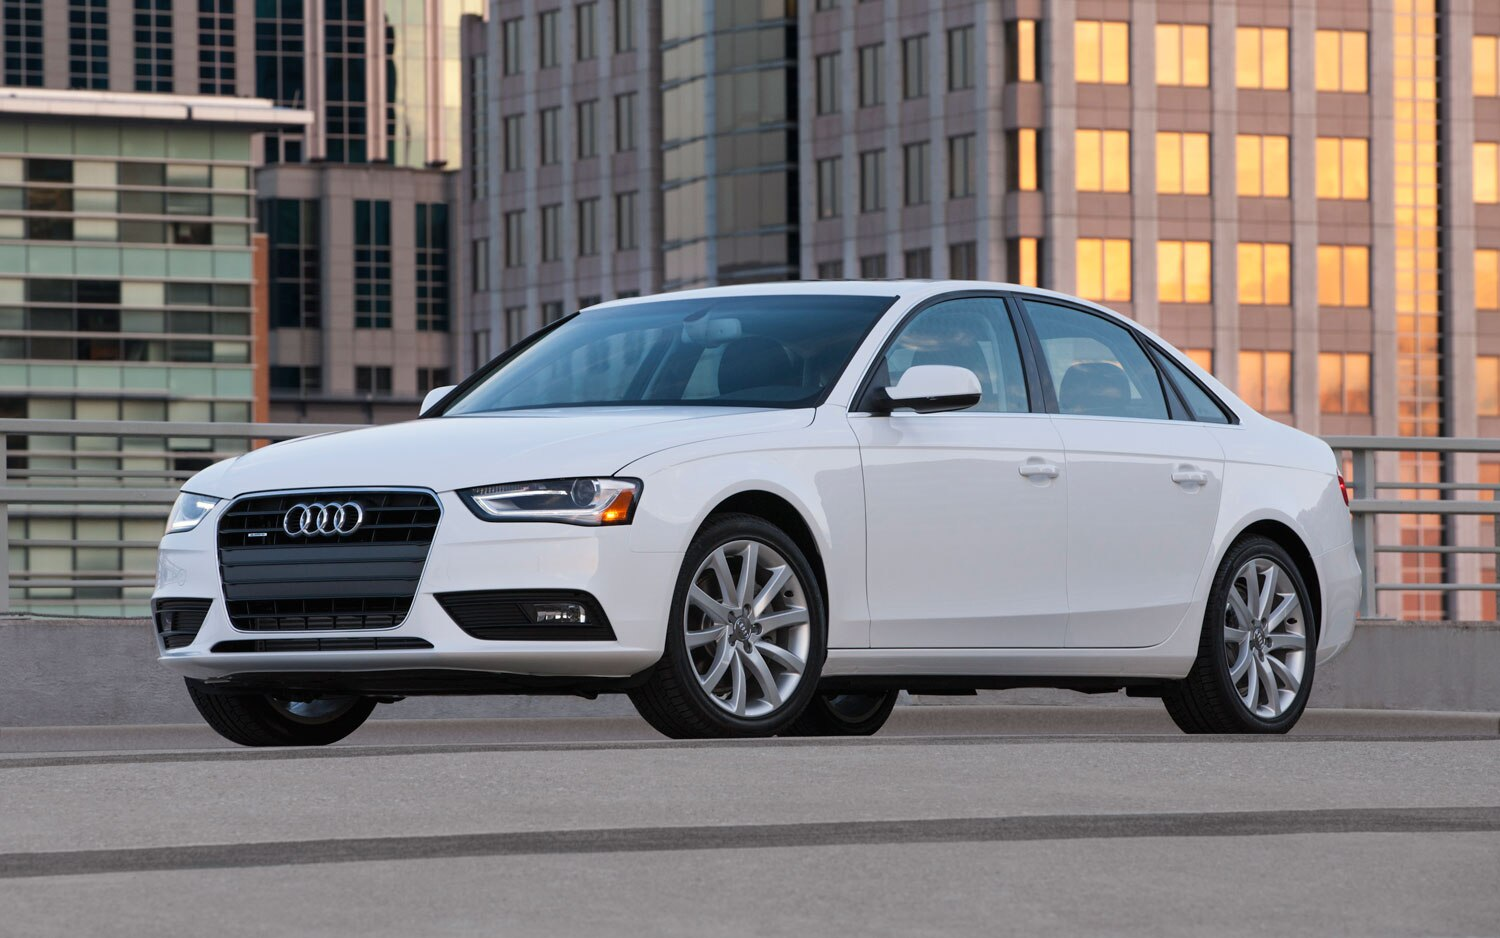 2012 Audi A4 Front Three Quarter View1